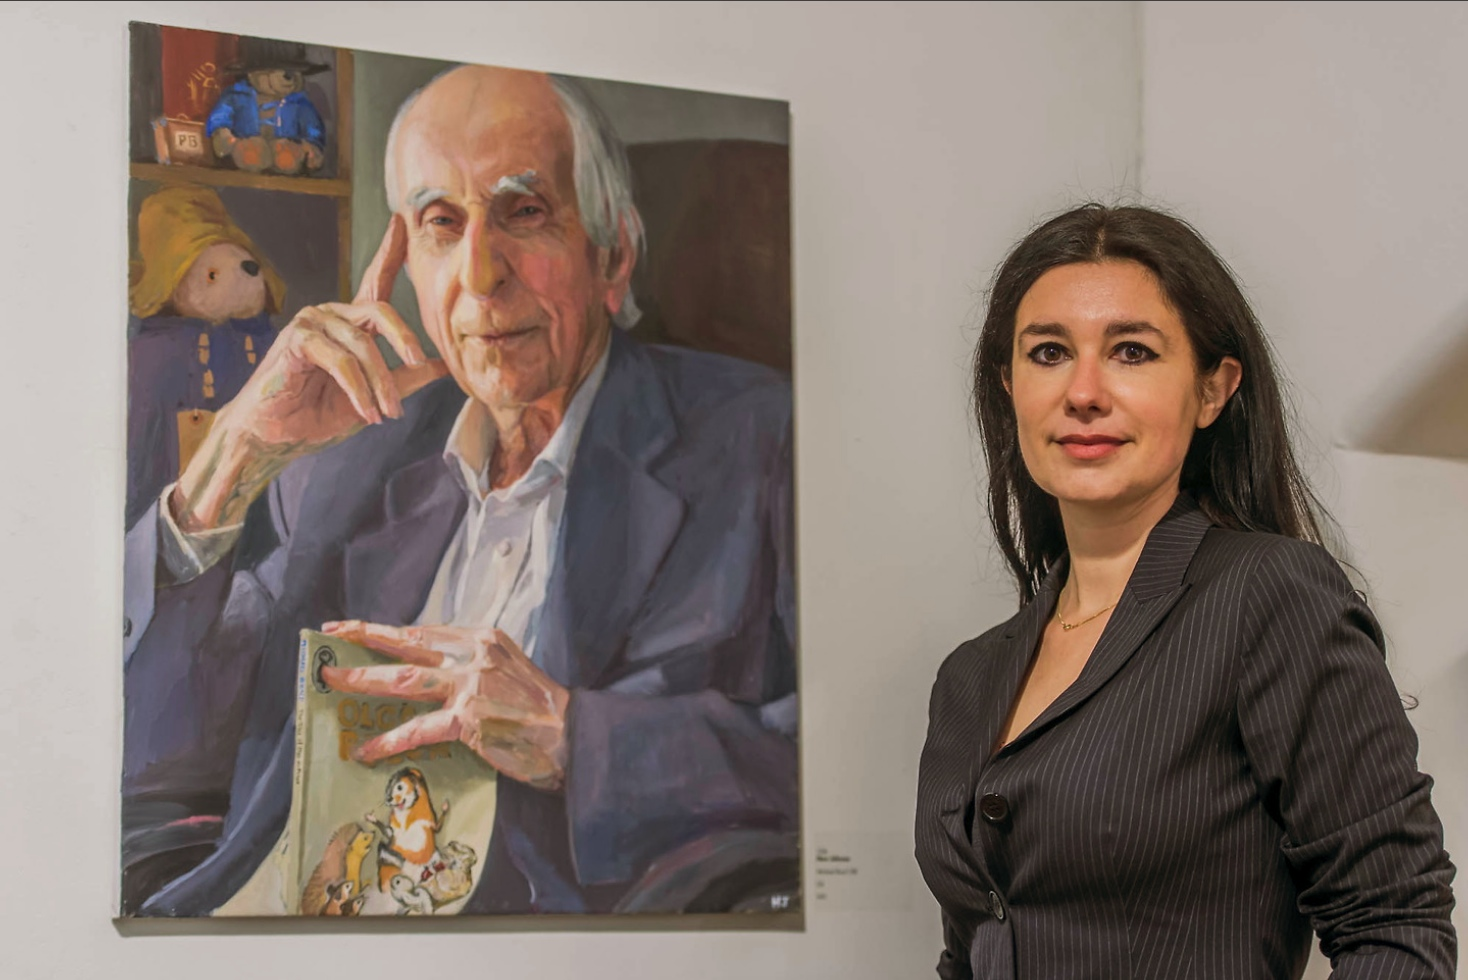 Hero Johnson with her painting of Michael Bond. Image copyright Guy Bell